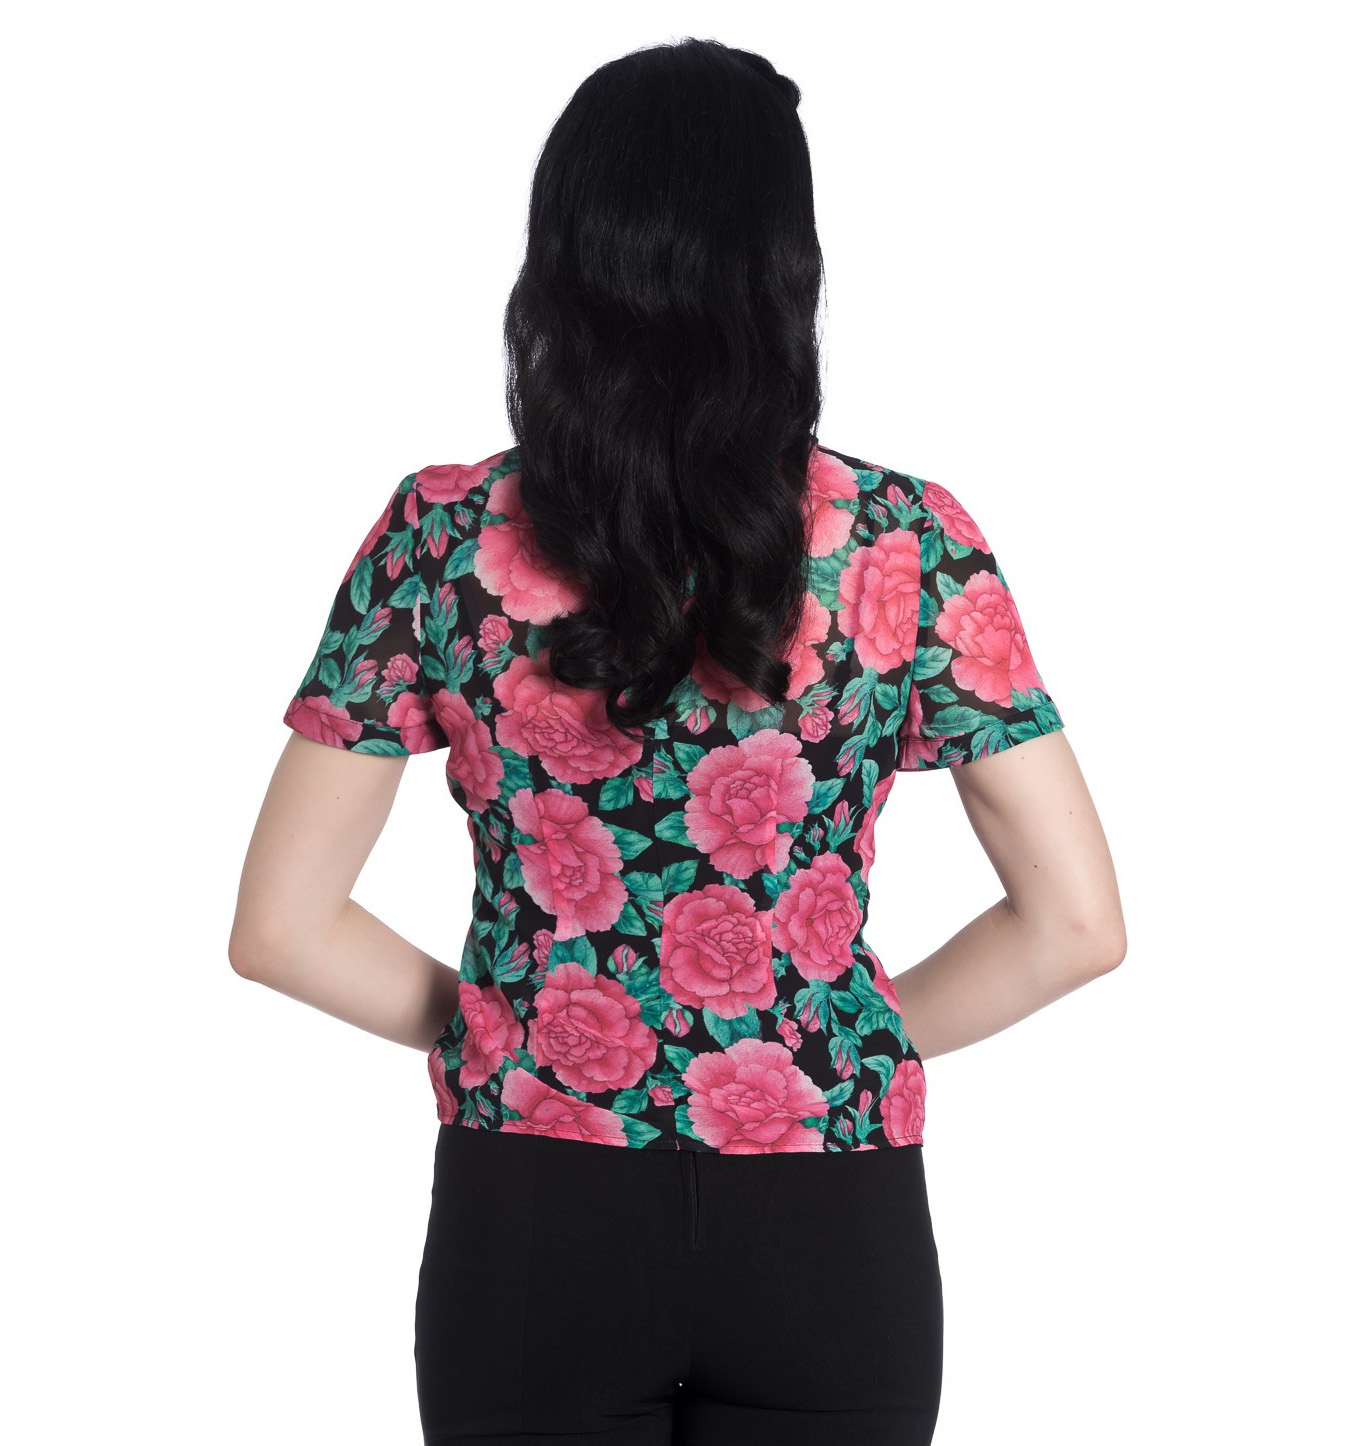 Hell-Bunny-Shirt-Top-Flowers-Roses-EDEN-ROSE-Black-Pink-Blouse-All-Sizes thumbnail 9